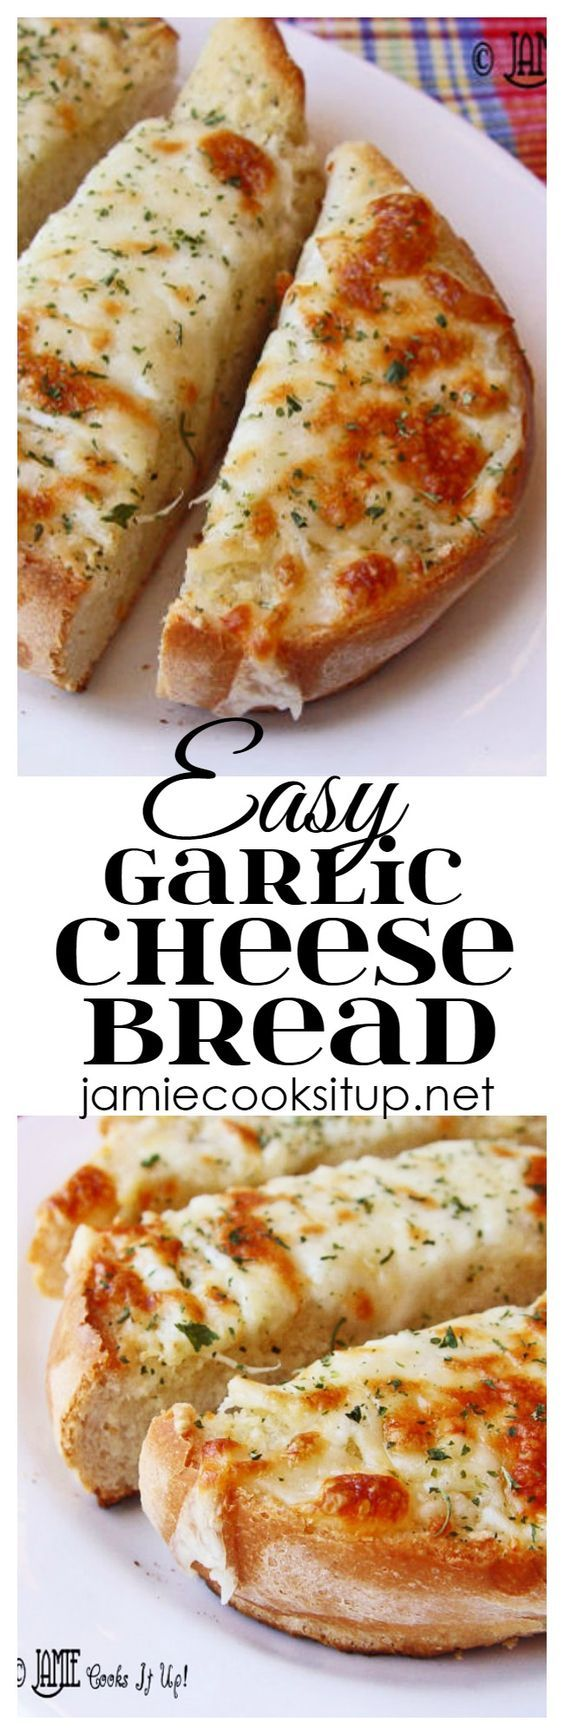 Easy Garlic Cheese Bread from Jamie Cooks It Up! You can make this wonderful cheesy bread in about 15 minutes.